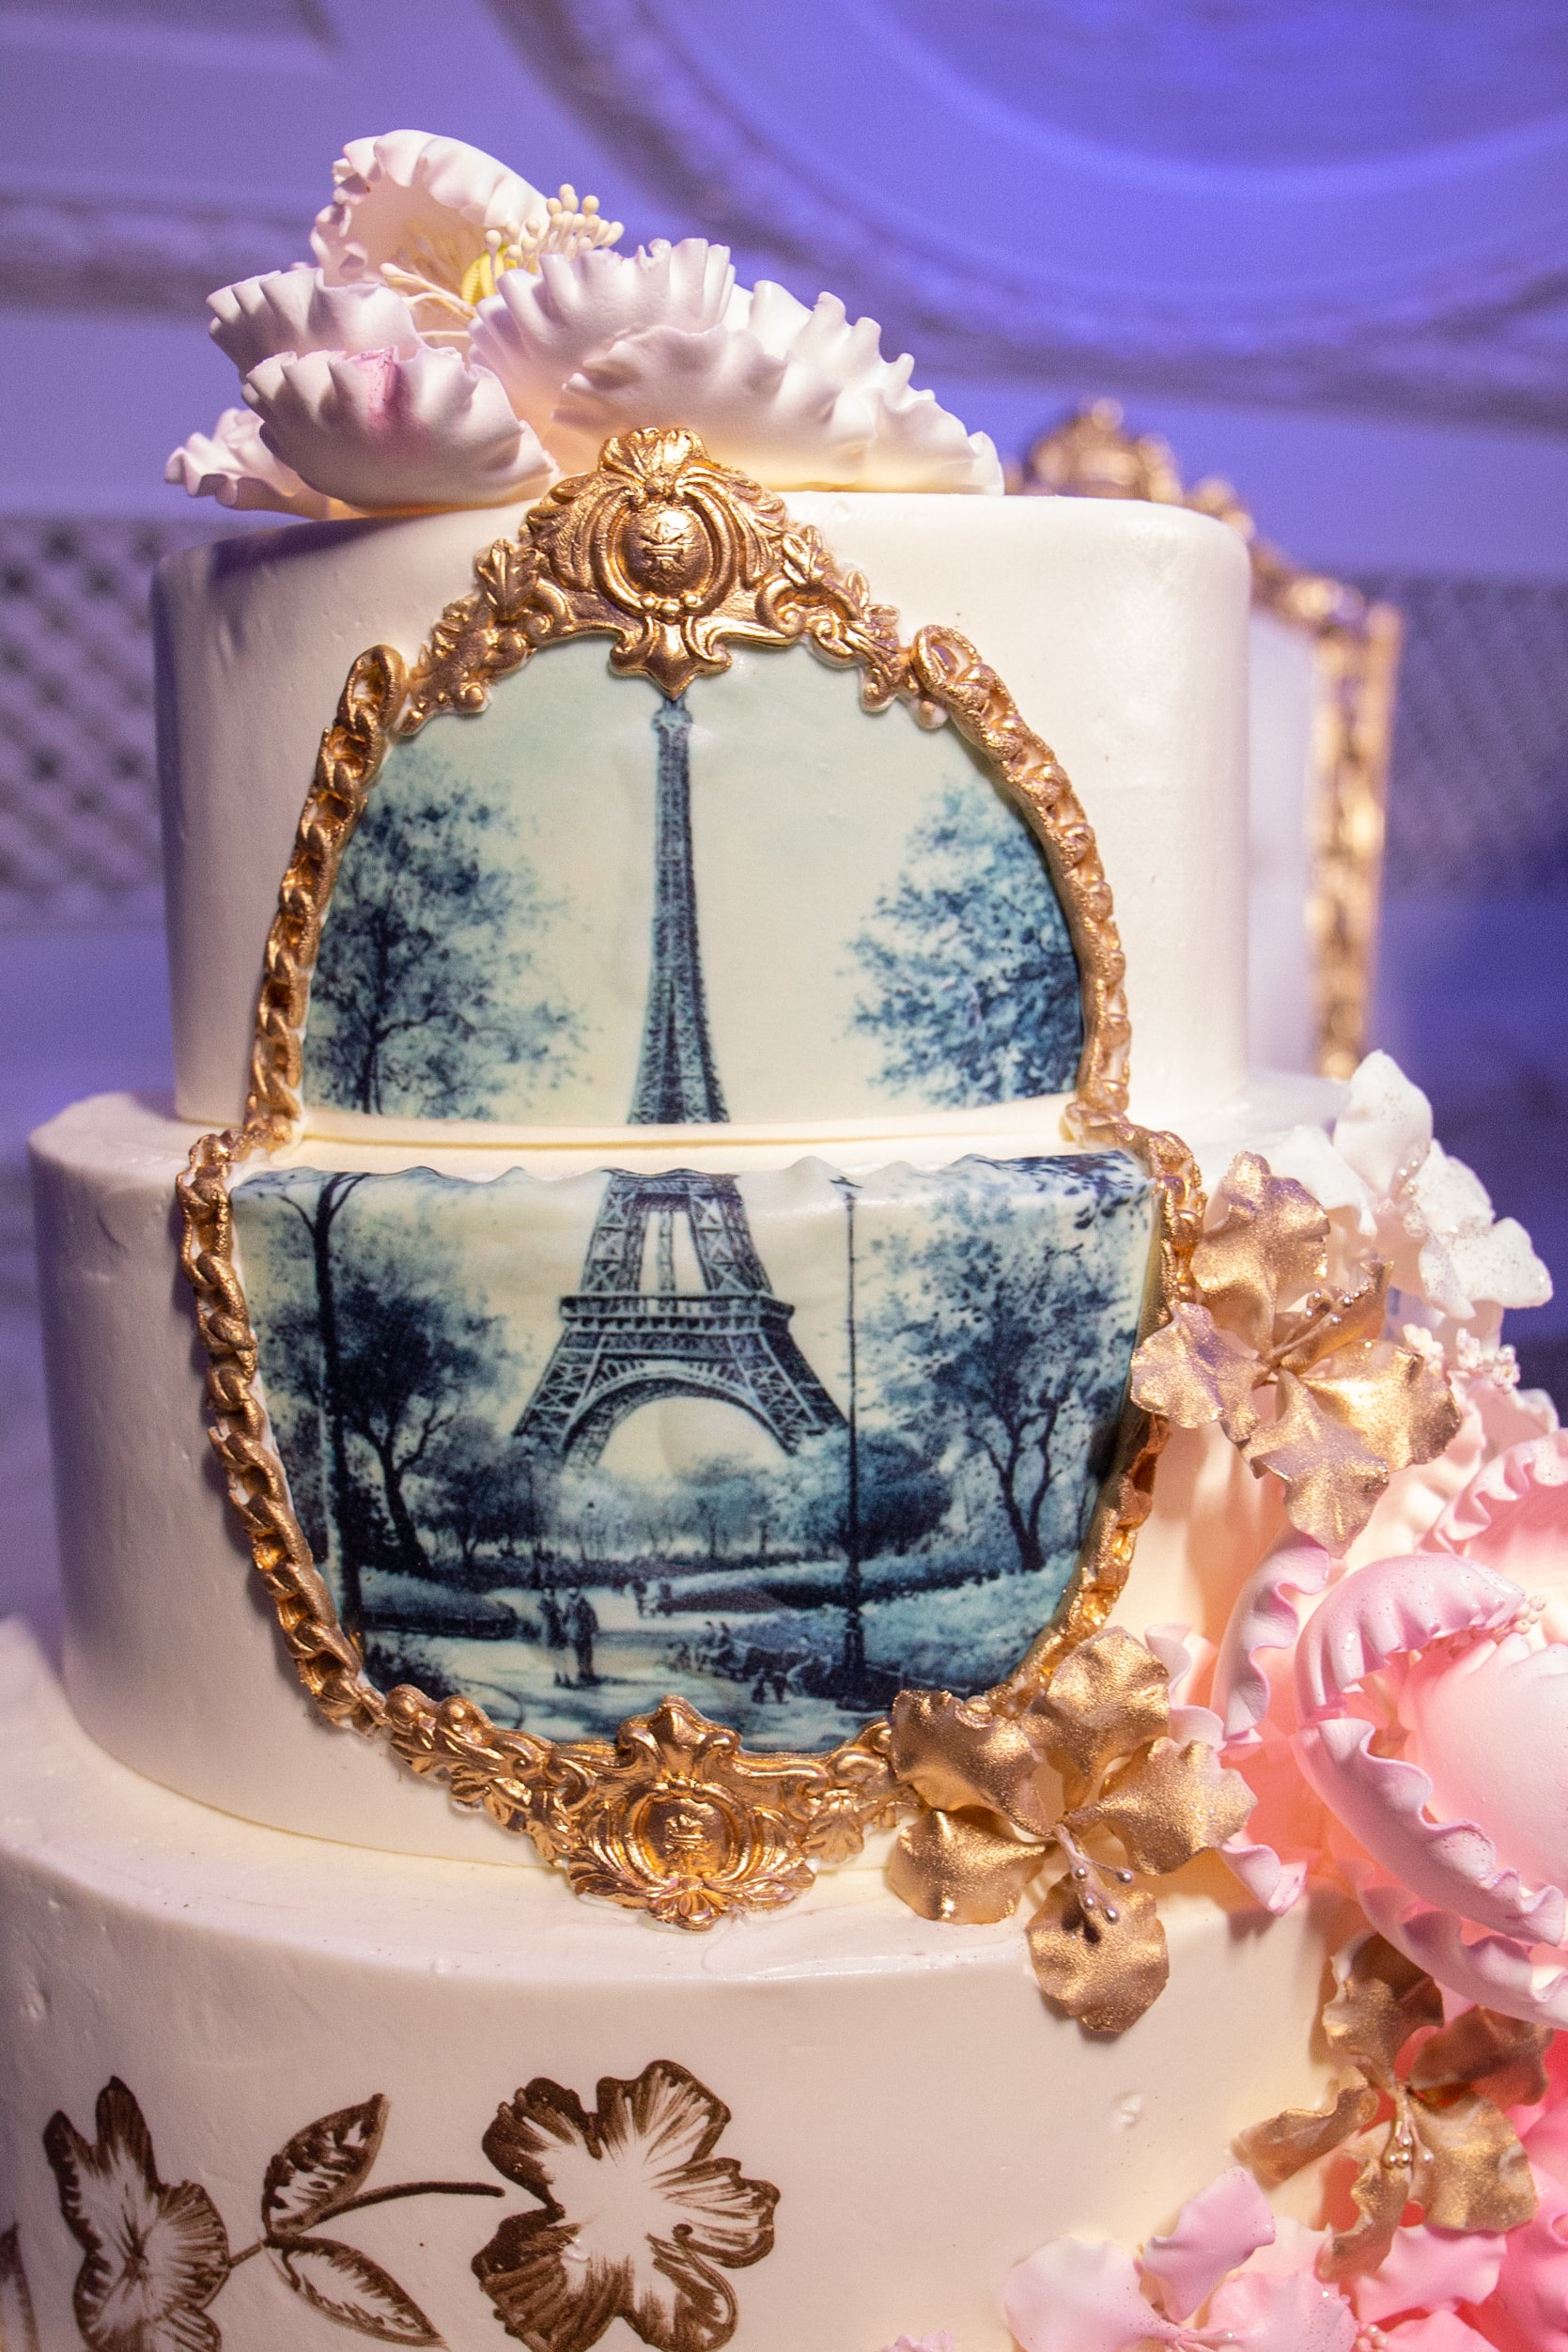 Wedding cake designed with a black and white portrait of the Eiffel Tower.